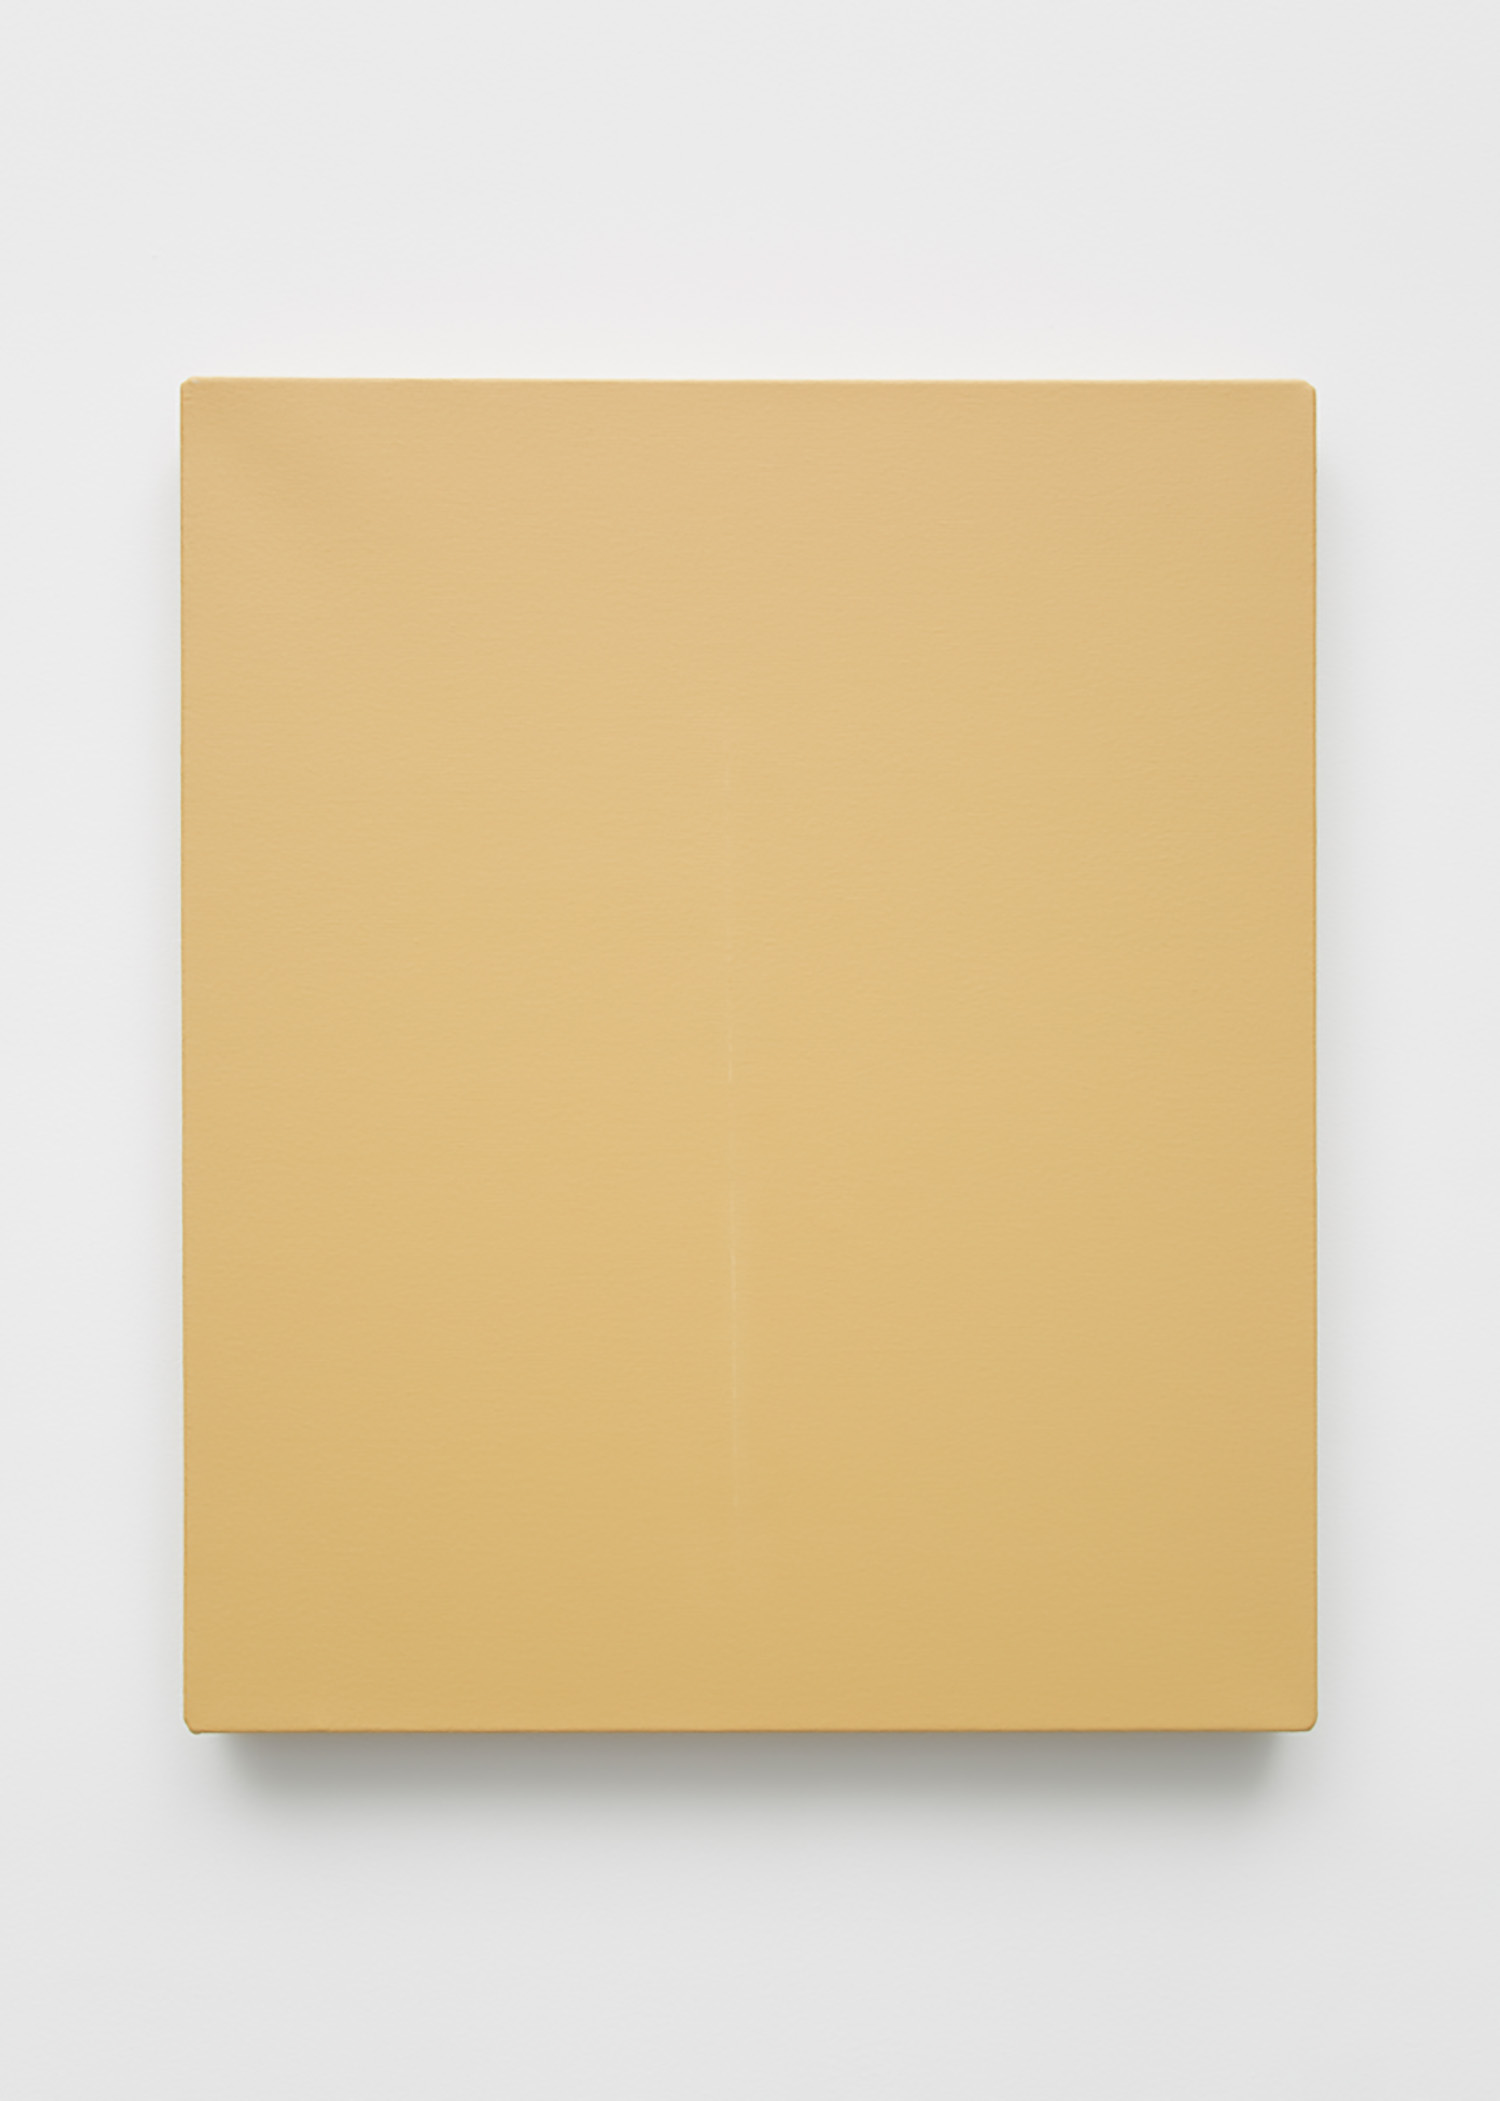 """Concetto spaziale - Attese (conserved) , 2018-2019, Acrylic on canvas, calcium carbonate, polyvinyl alcohol medium, 21 ½"""" x 18"""""""